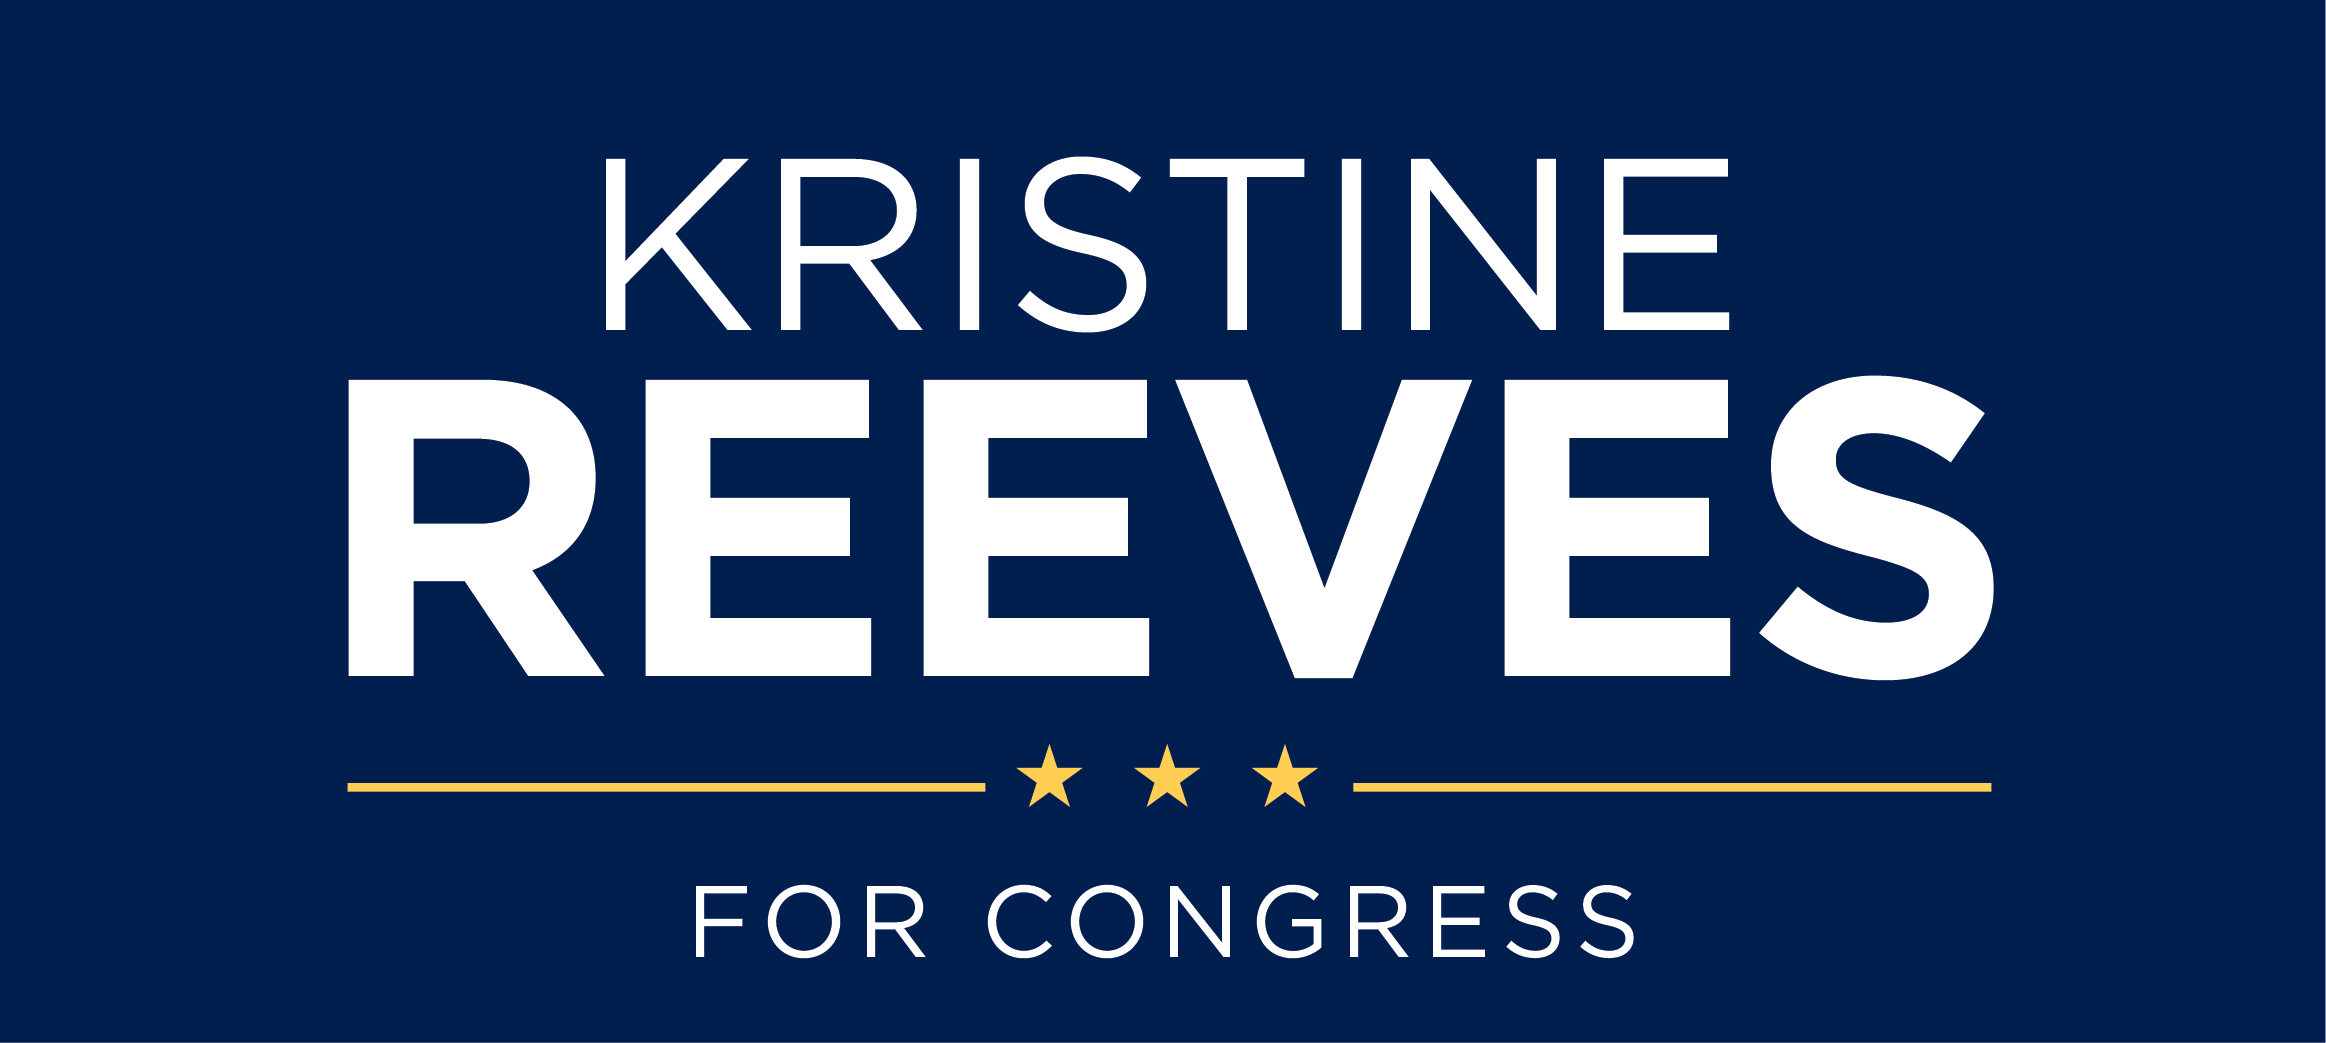 Kristine Reeves for Congress